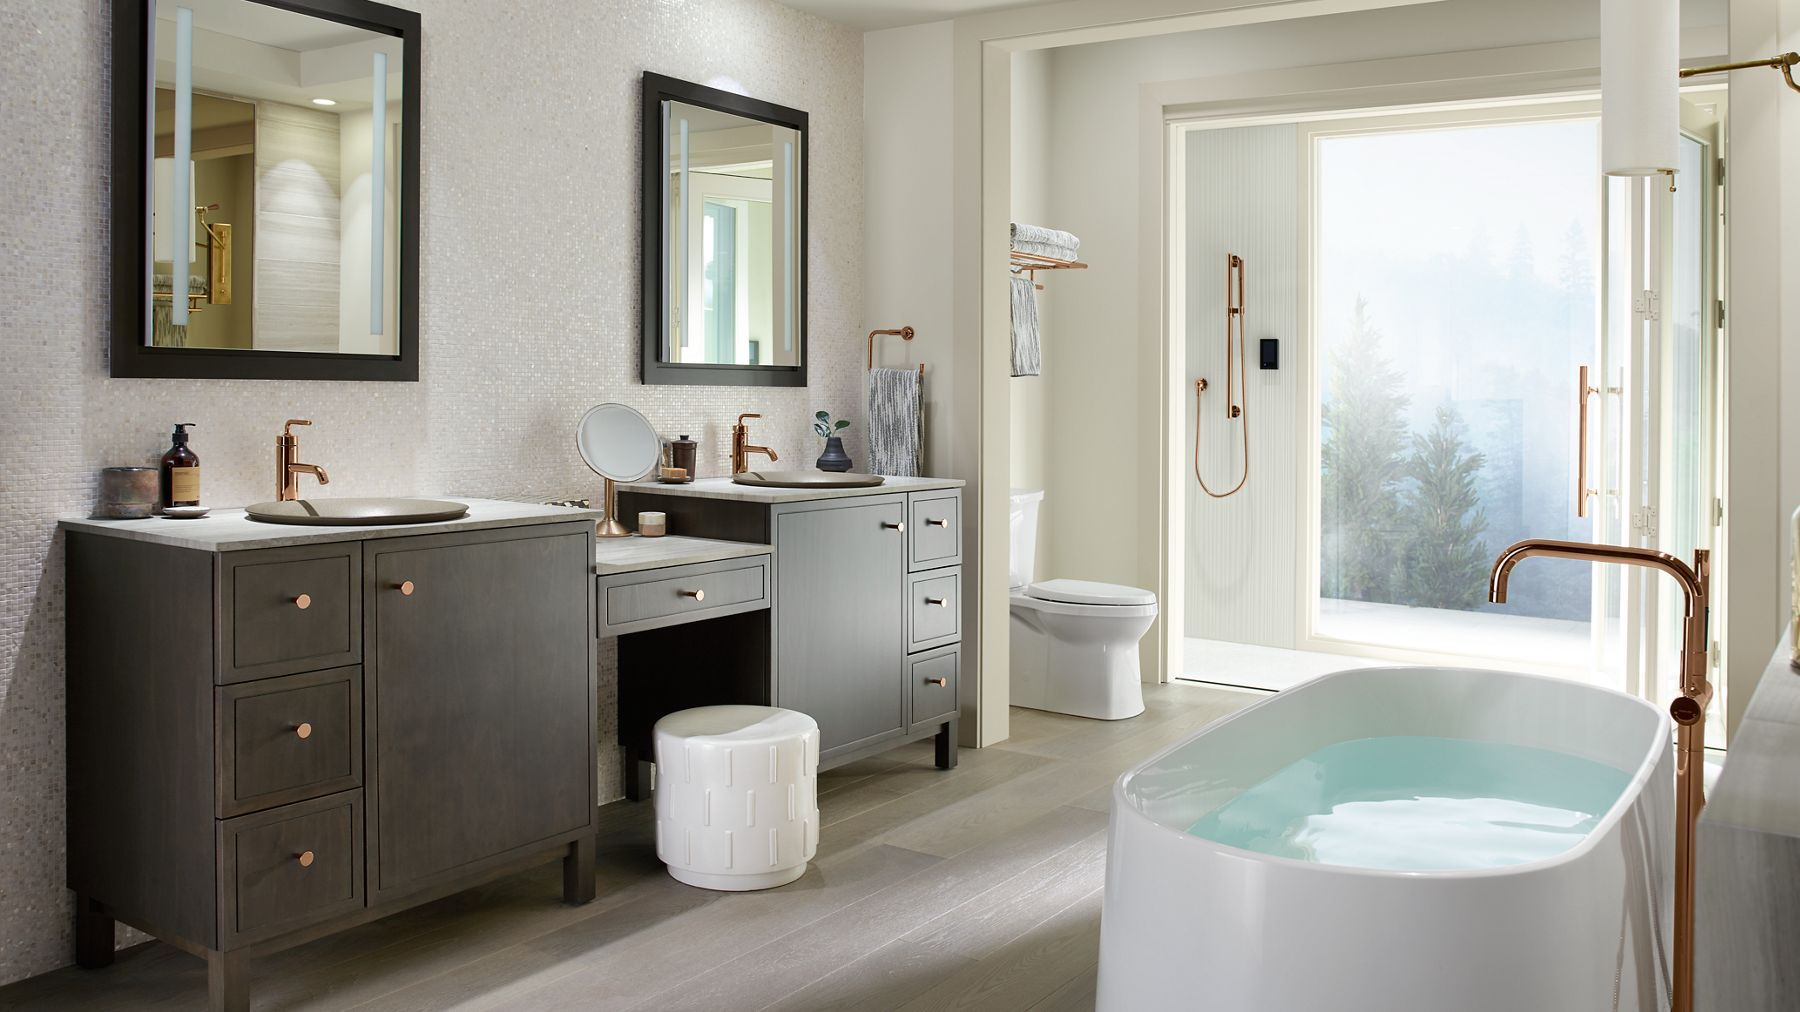 Bathroom Showrooms Joondalup kohler | toilets, showers, sinks, faucets and more for bathroom